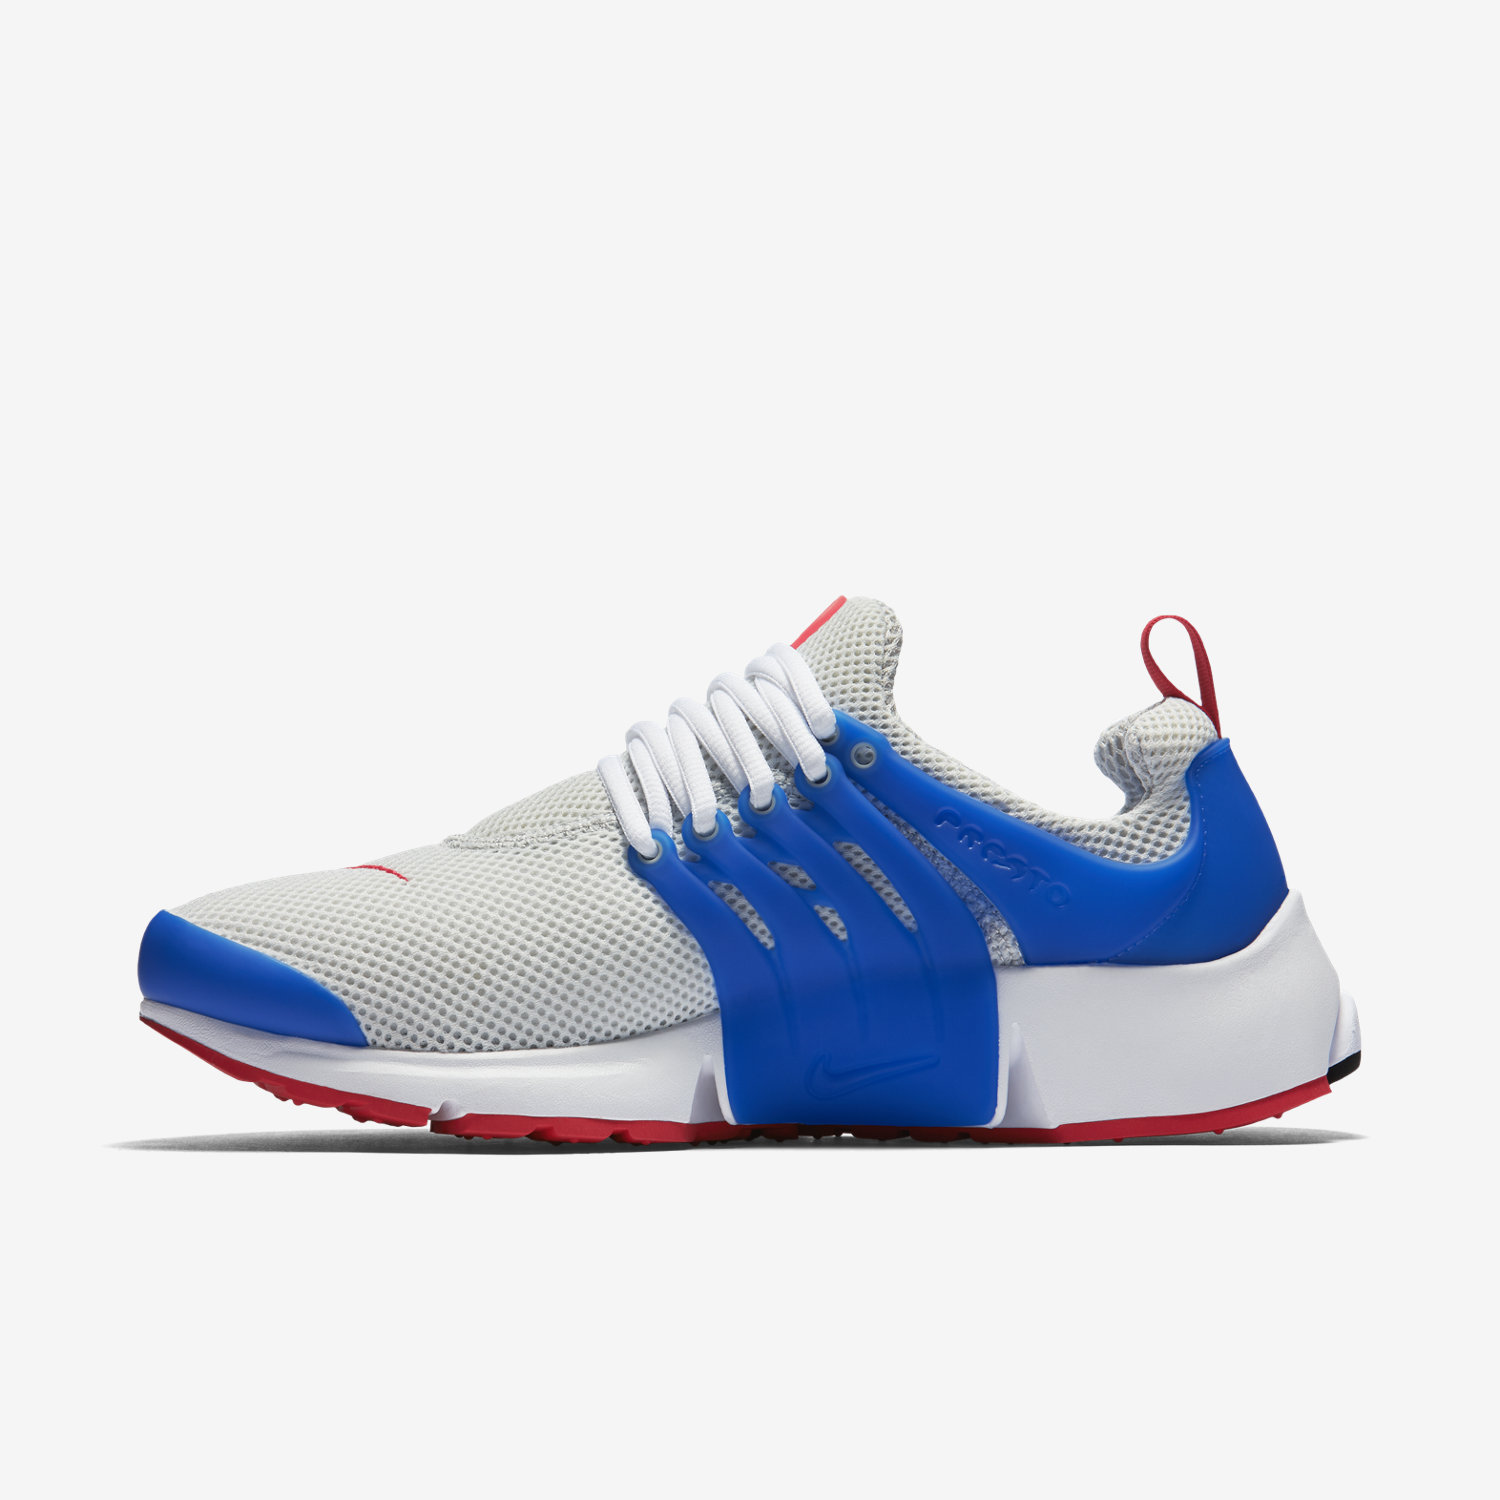 http://images.nike.com/is/image/DotCom/PDP_HERO_ZOOM/NIKE-AIR-PRESTO-ESSENTIAL-848187_004_C_PREM.jpg